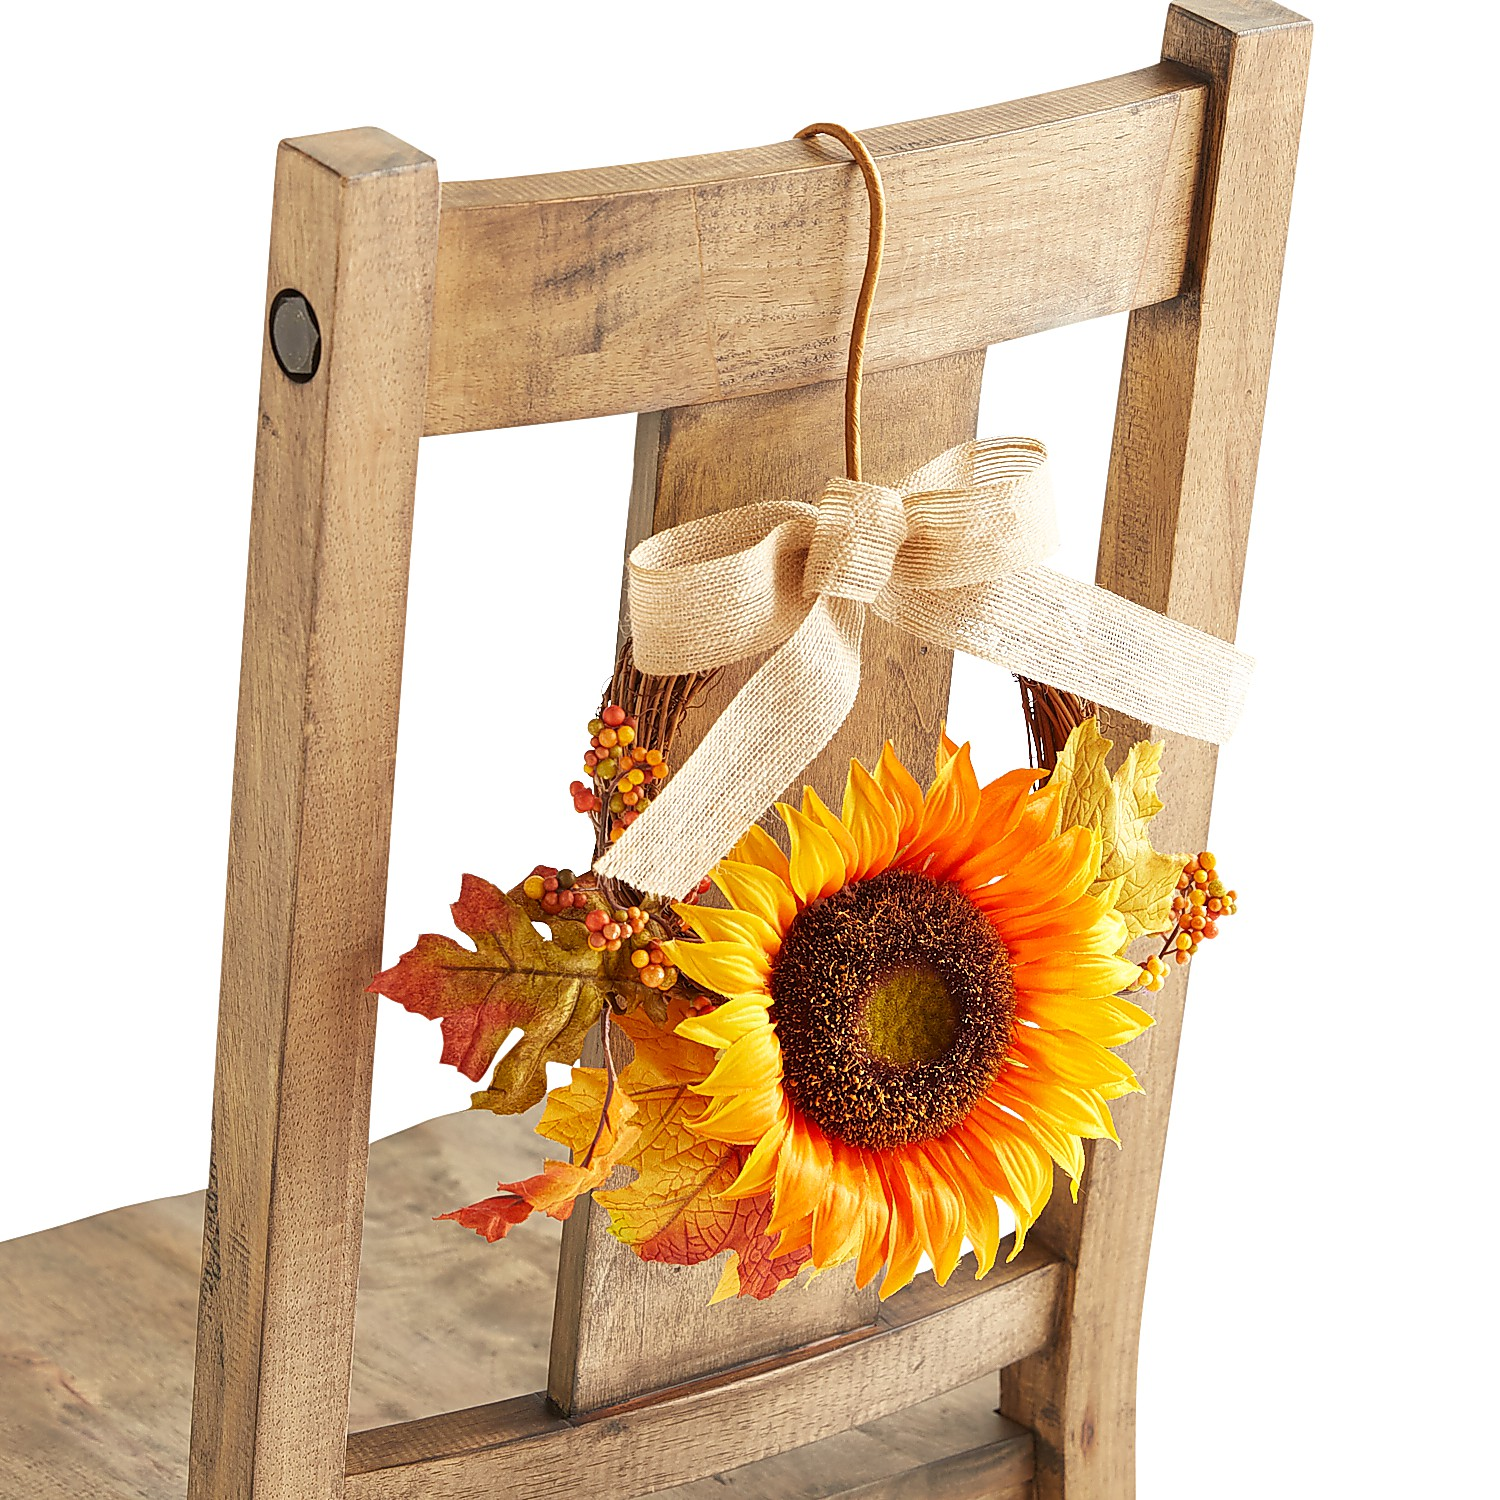 Faux Sunflower Hanging Chair Decor